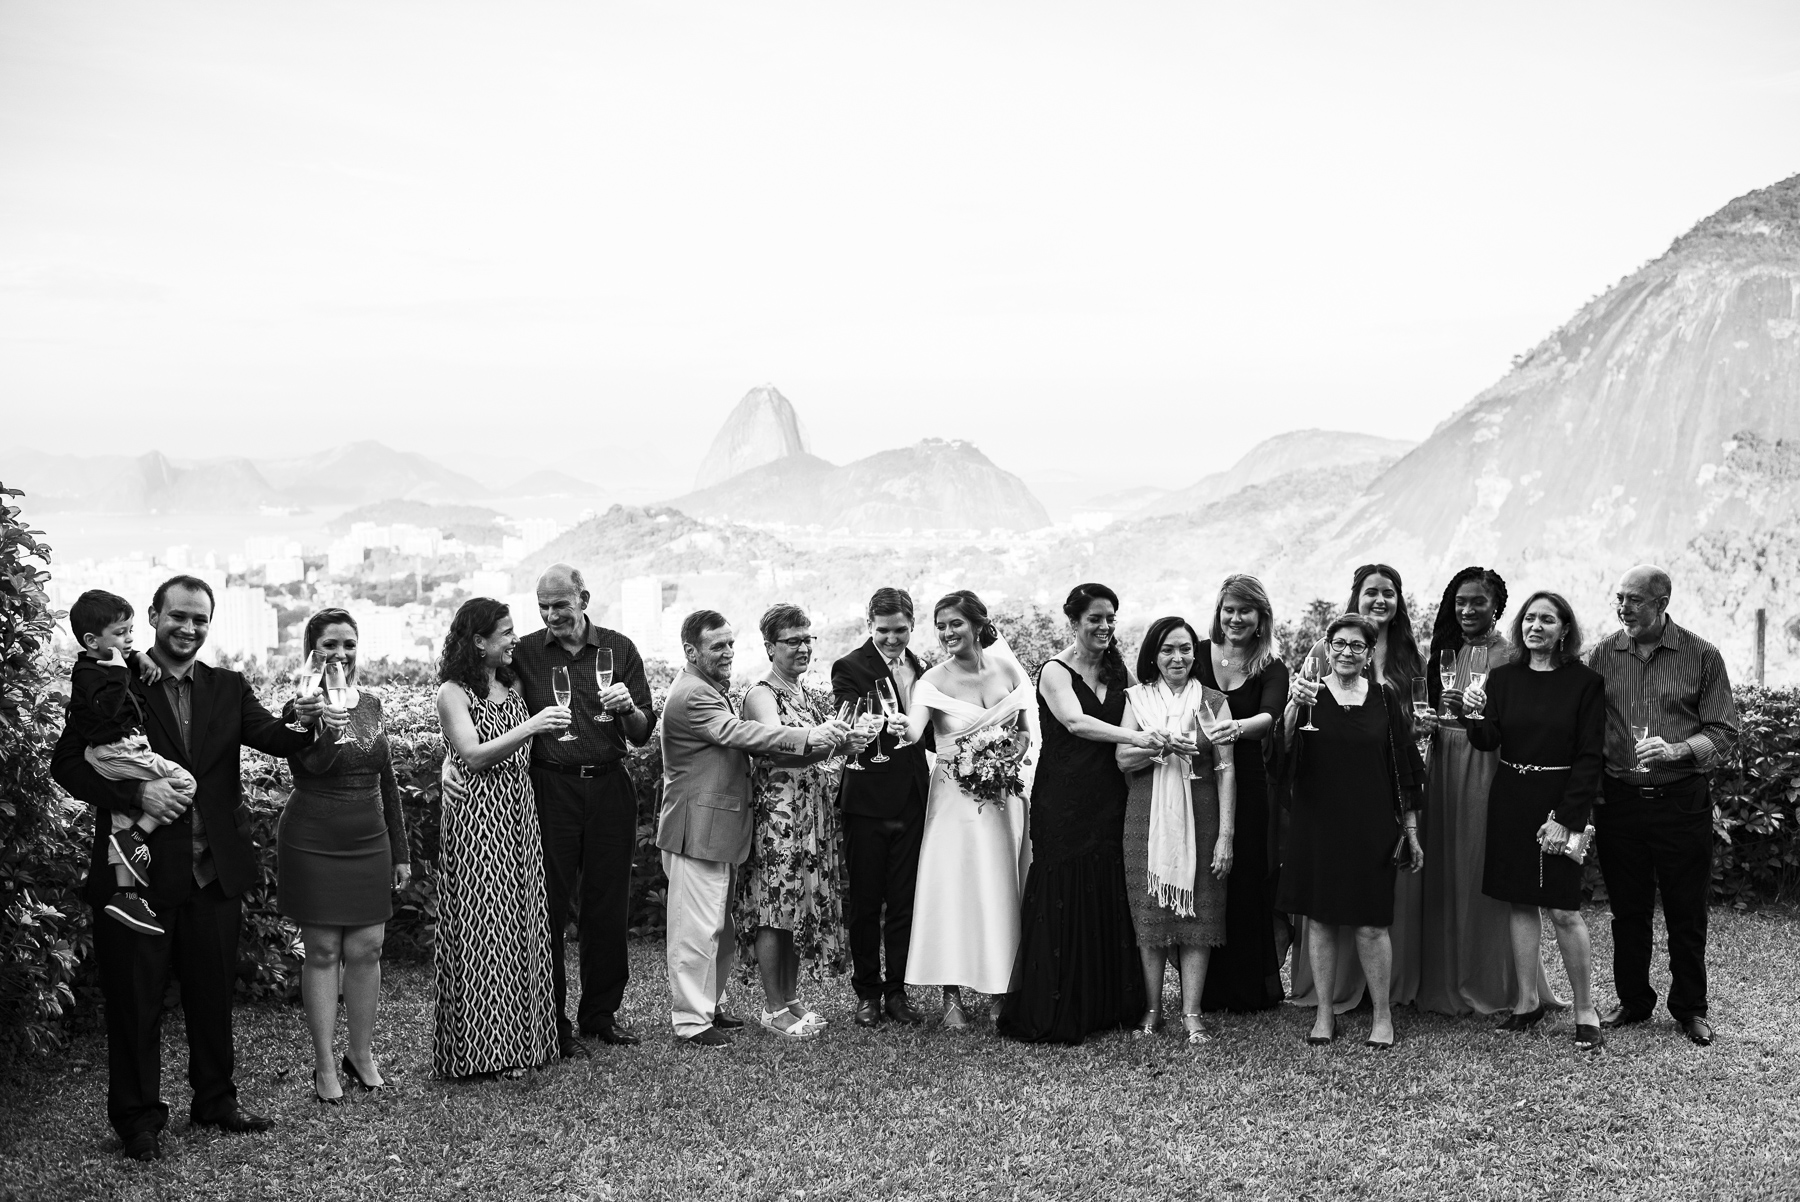 Destination Wedding Image - Casa de Santa Teresa, Rio de Janeiro | All of the wedding guests toast the new couple